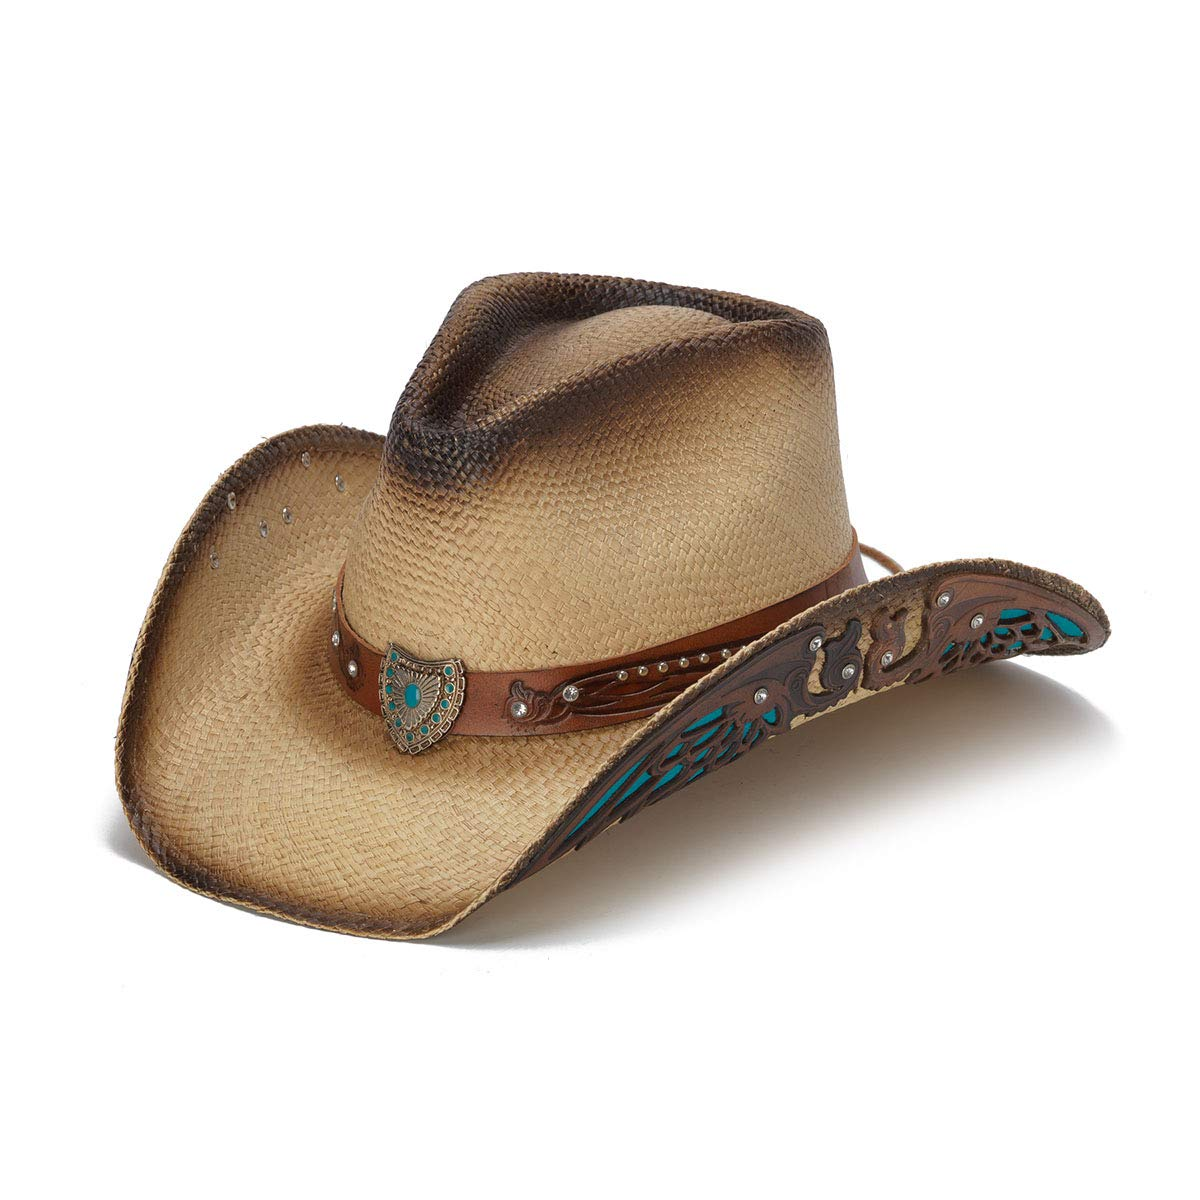 Stampede Hats Women's Concho Turquoise Wings Rhinestone Western Hat XS Tea Stain